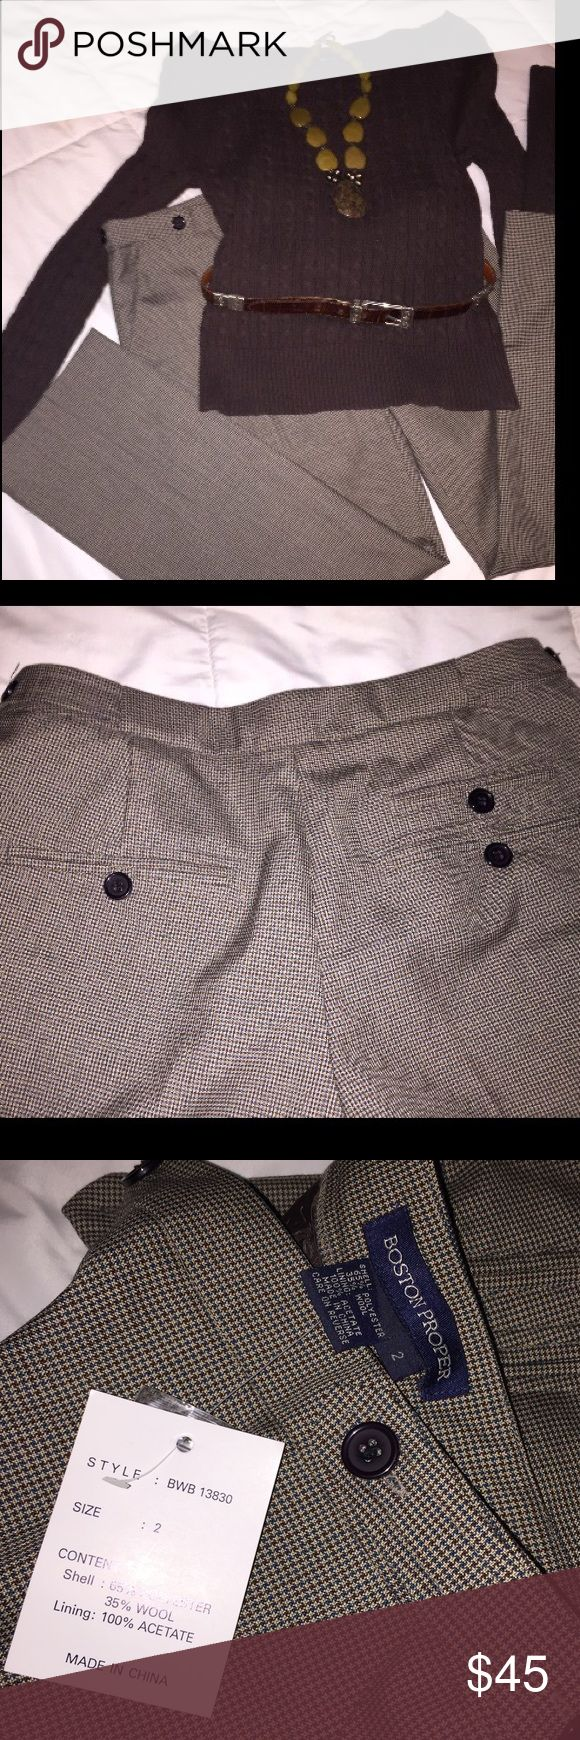 Boston Proper crop slacks and Gap sweater Boston Proper checked tanish/brown crop slacks, size 2. Gap cable sweater (light not heavy) XS, I am a 32C-D and it fits nicely. It's a nice work outfit or just a chilly day outfit! It's very classy and very classic! Bundle them and save! Boston Proper Pants Ankle & Cropped